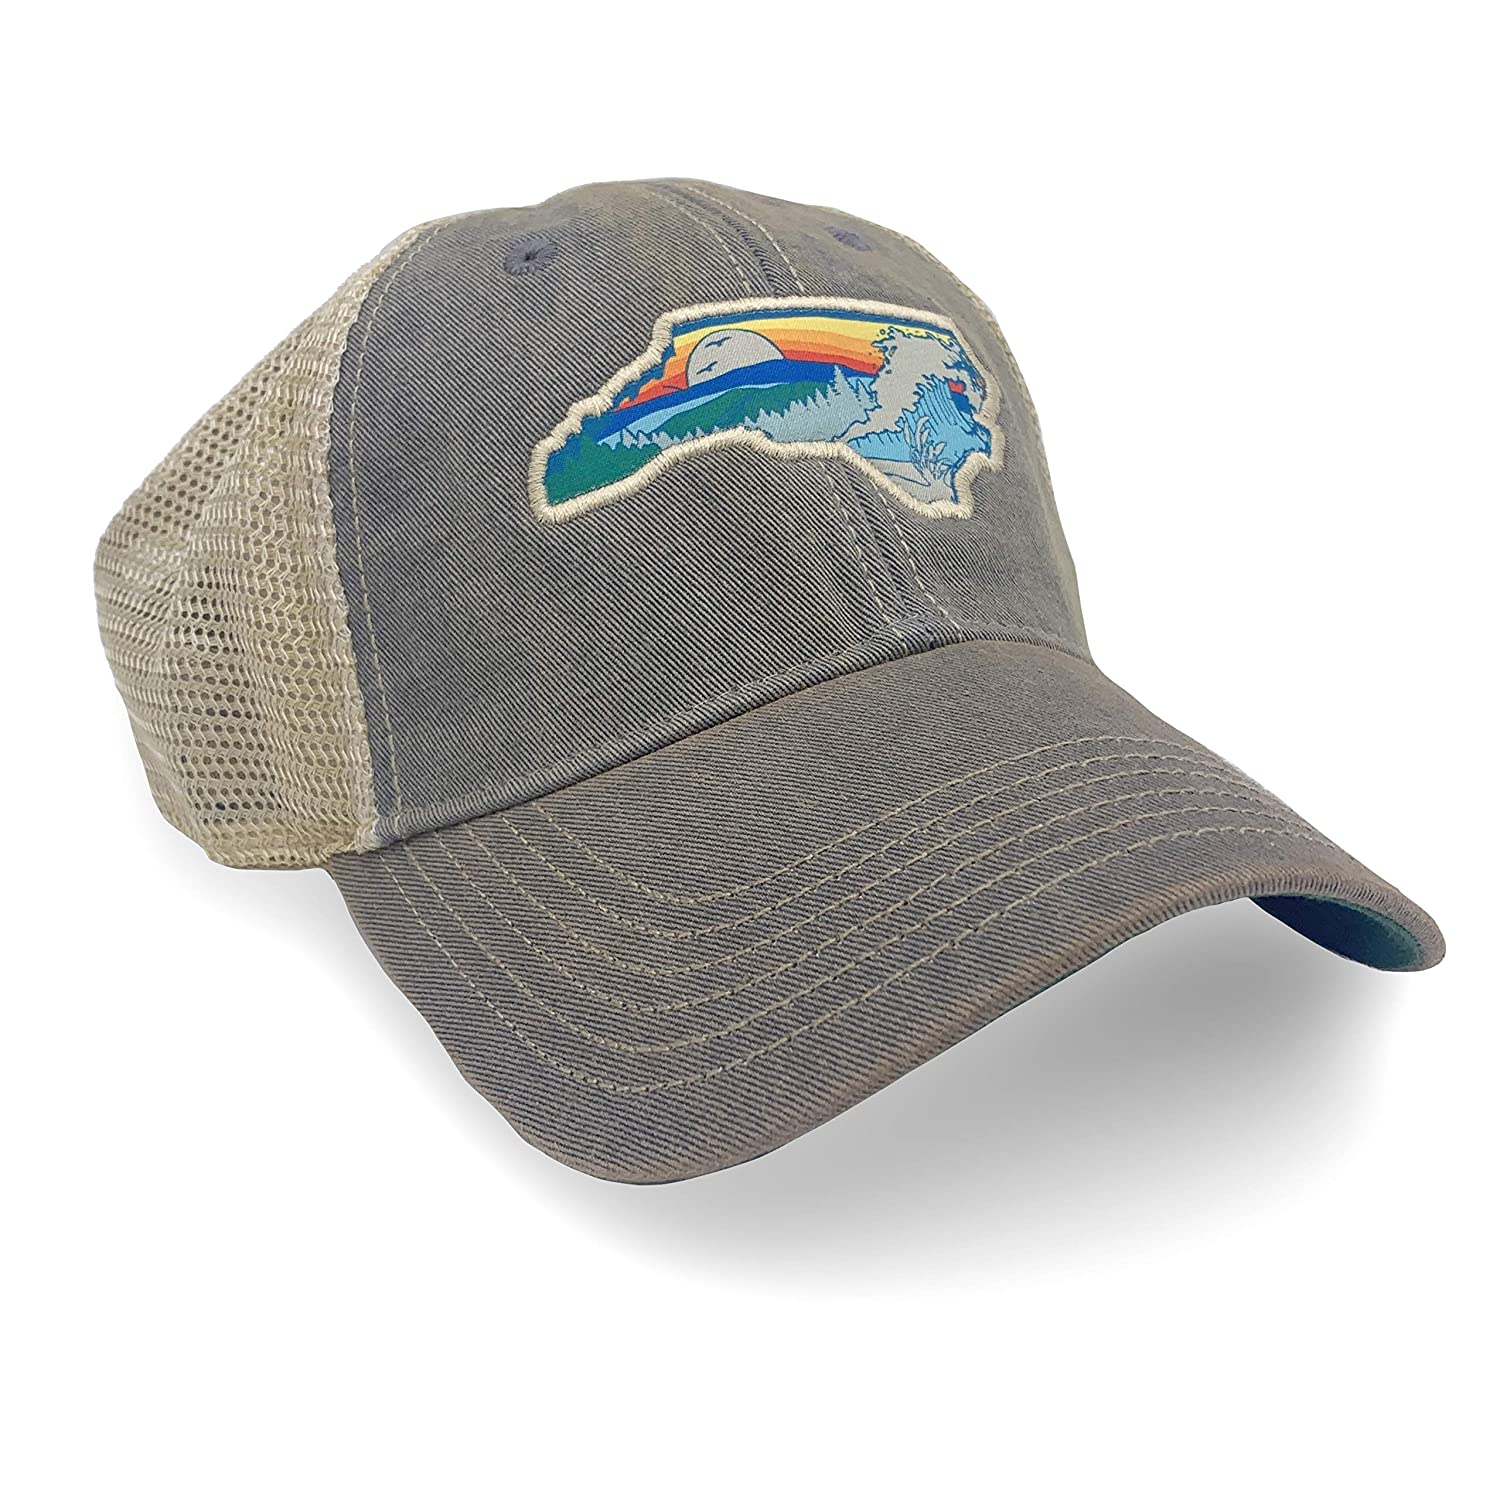 North Limited price sale Carolina Outdoors Patch Surprise price Trucker Weathered - Unstruct Hat